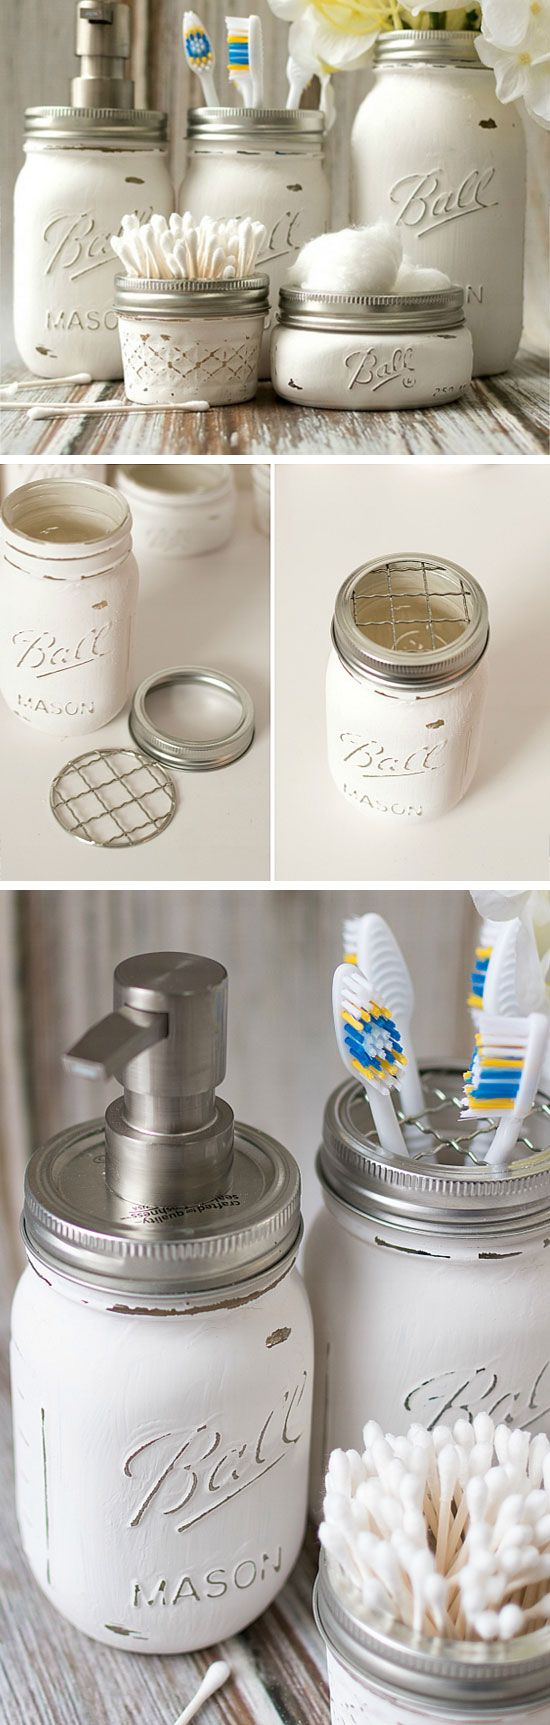 Mason Jar Bathroom Storage & Accessories | Dollar Store Organizing Ideas for Bathrooms